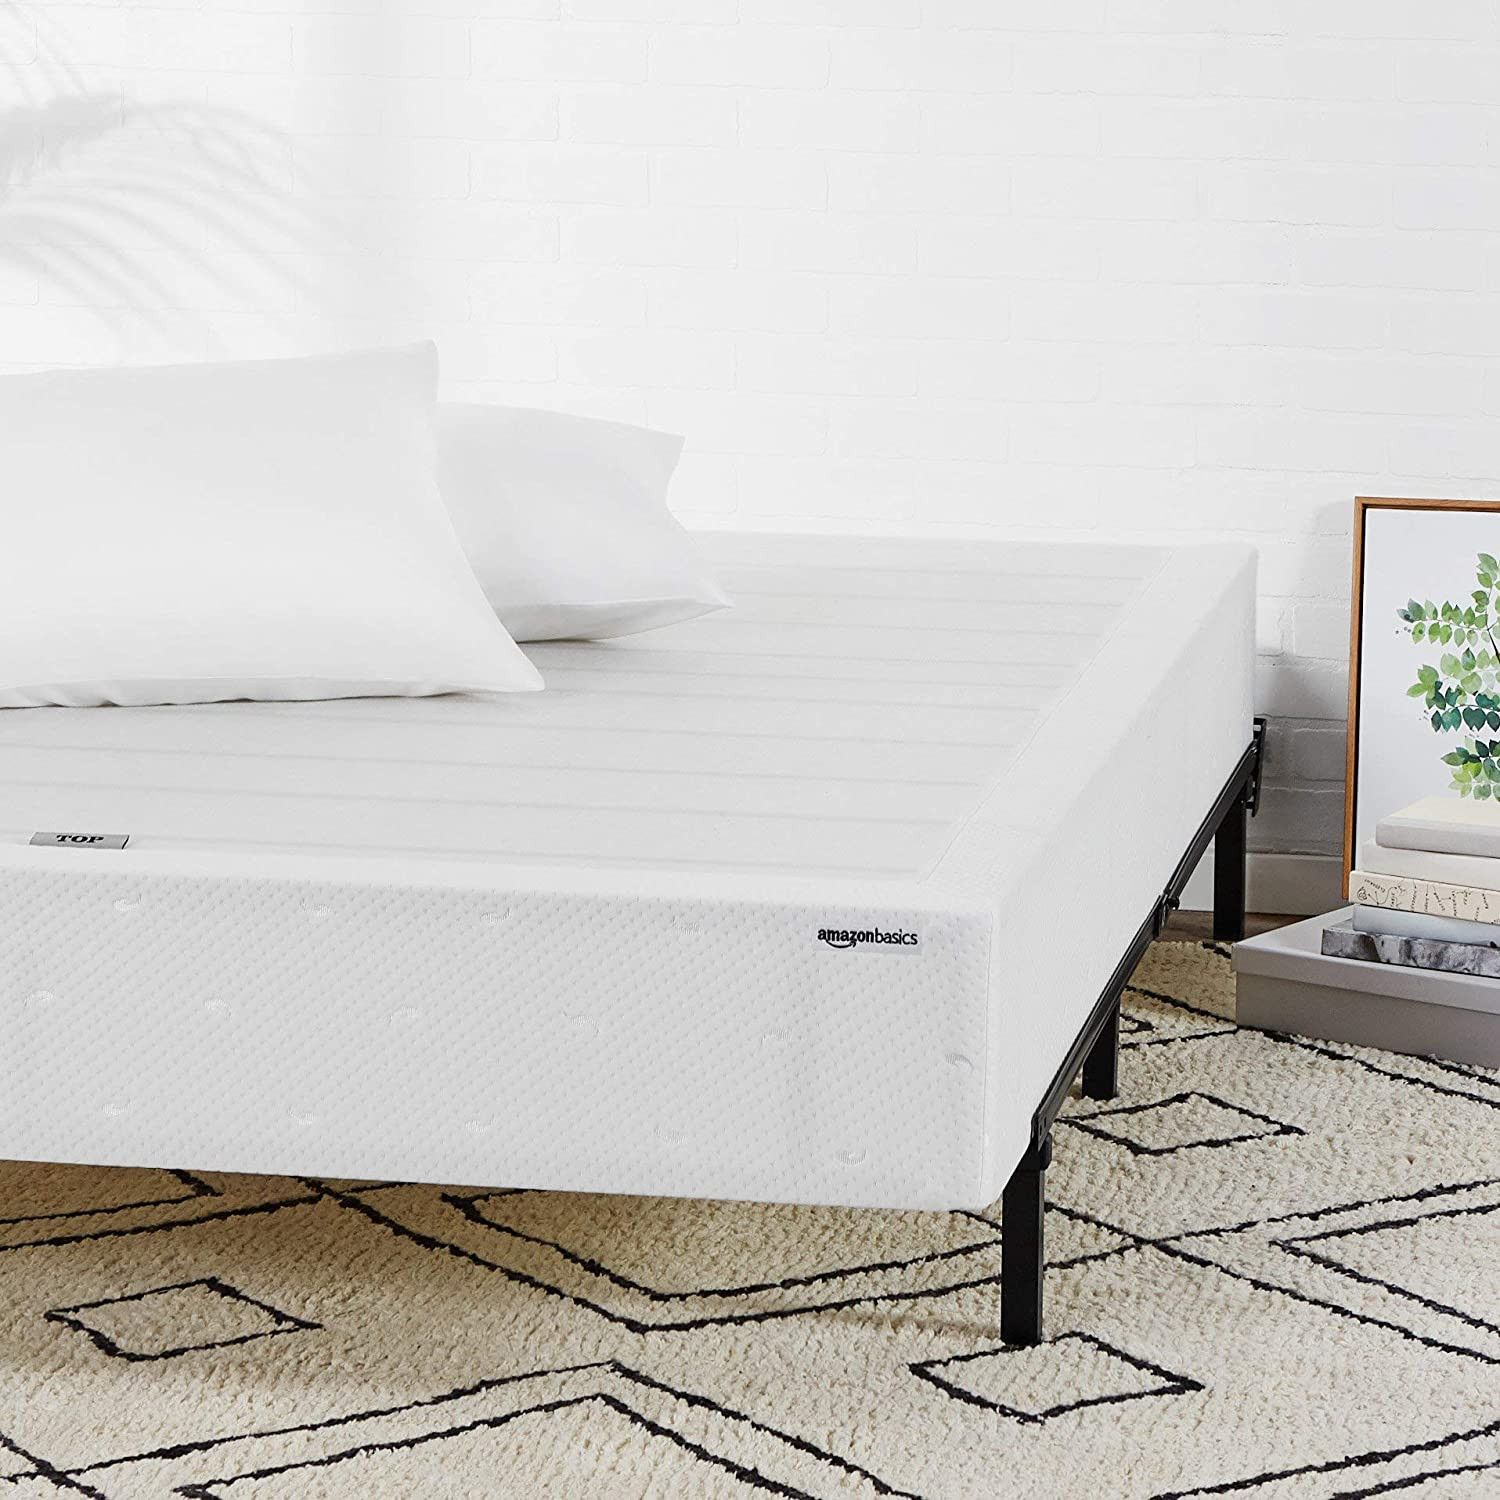 AmazonBasics Mattress Foundation / Smart Box Spring for Twin Size Bed, Tool-Free Easy Assembly - 9-Inch, Twin